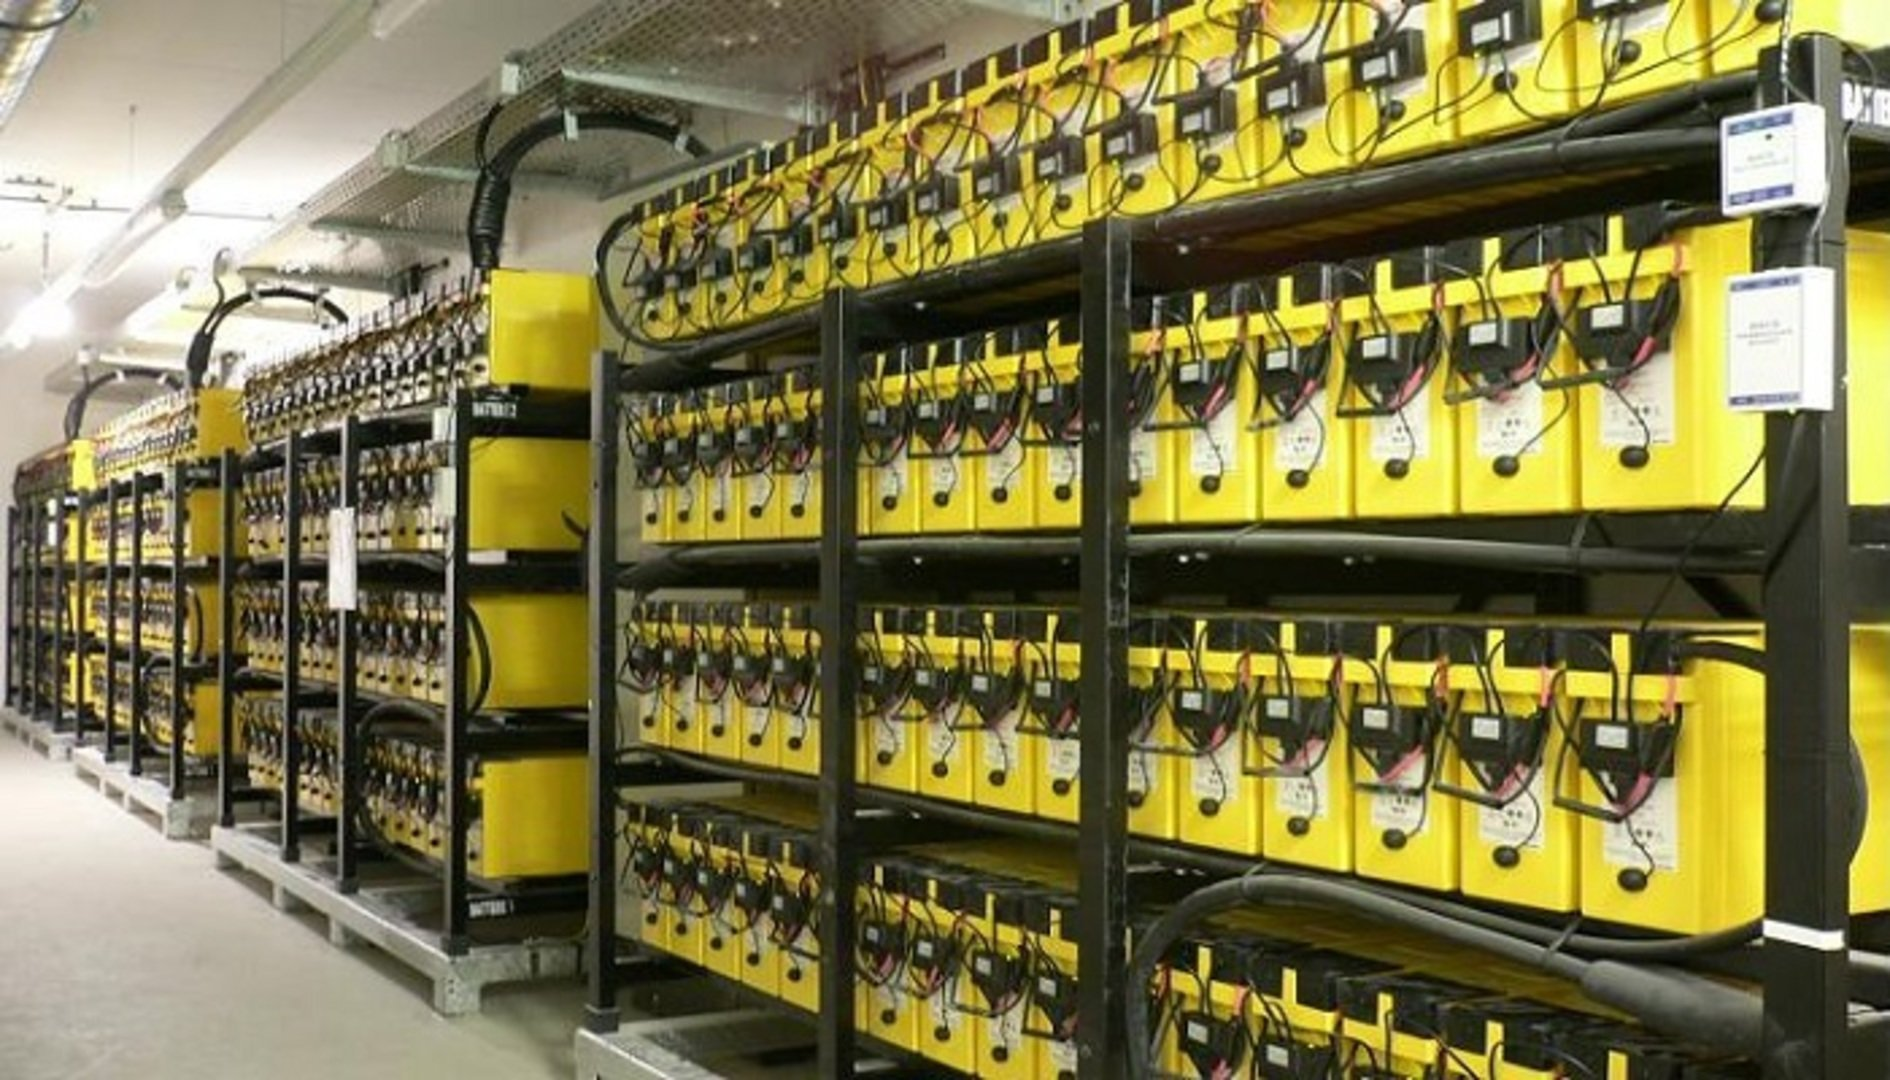 What Are The Spill Containment Requirements For Batteries?